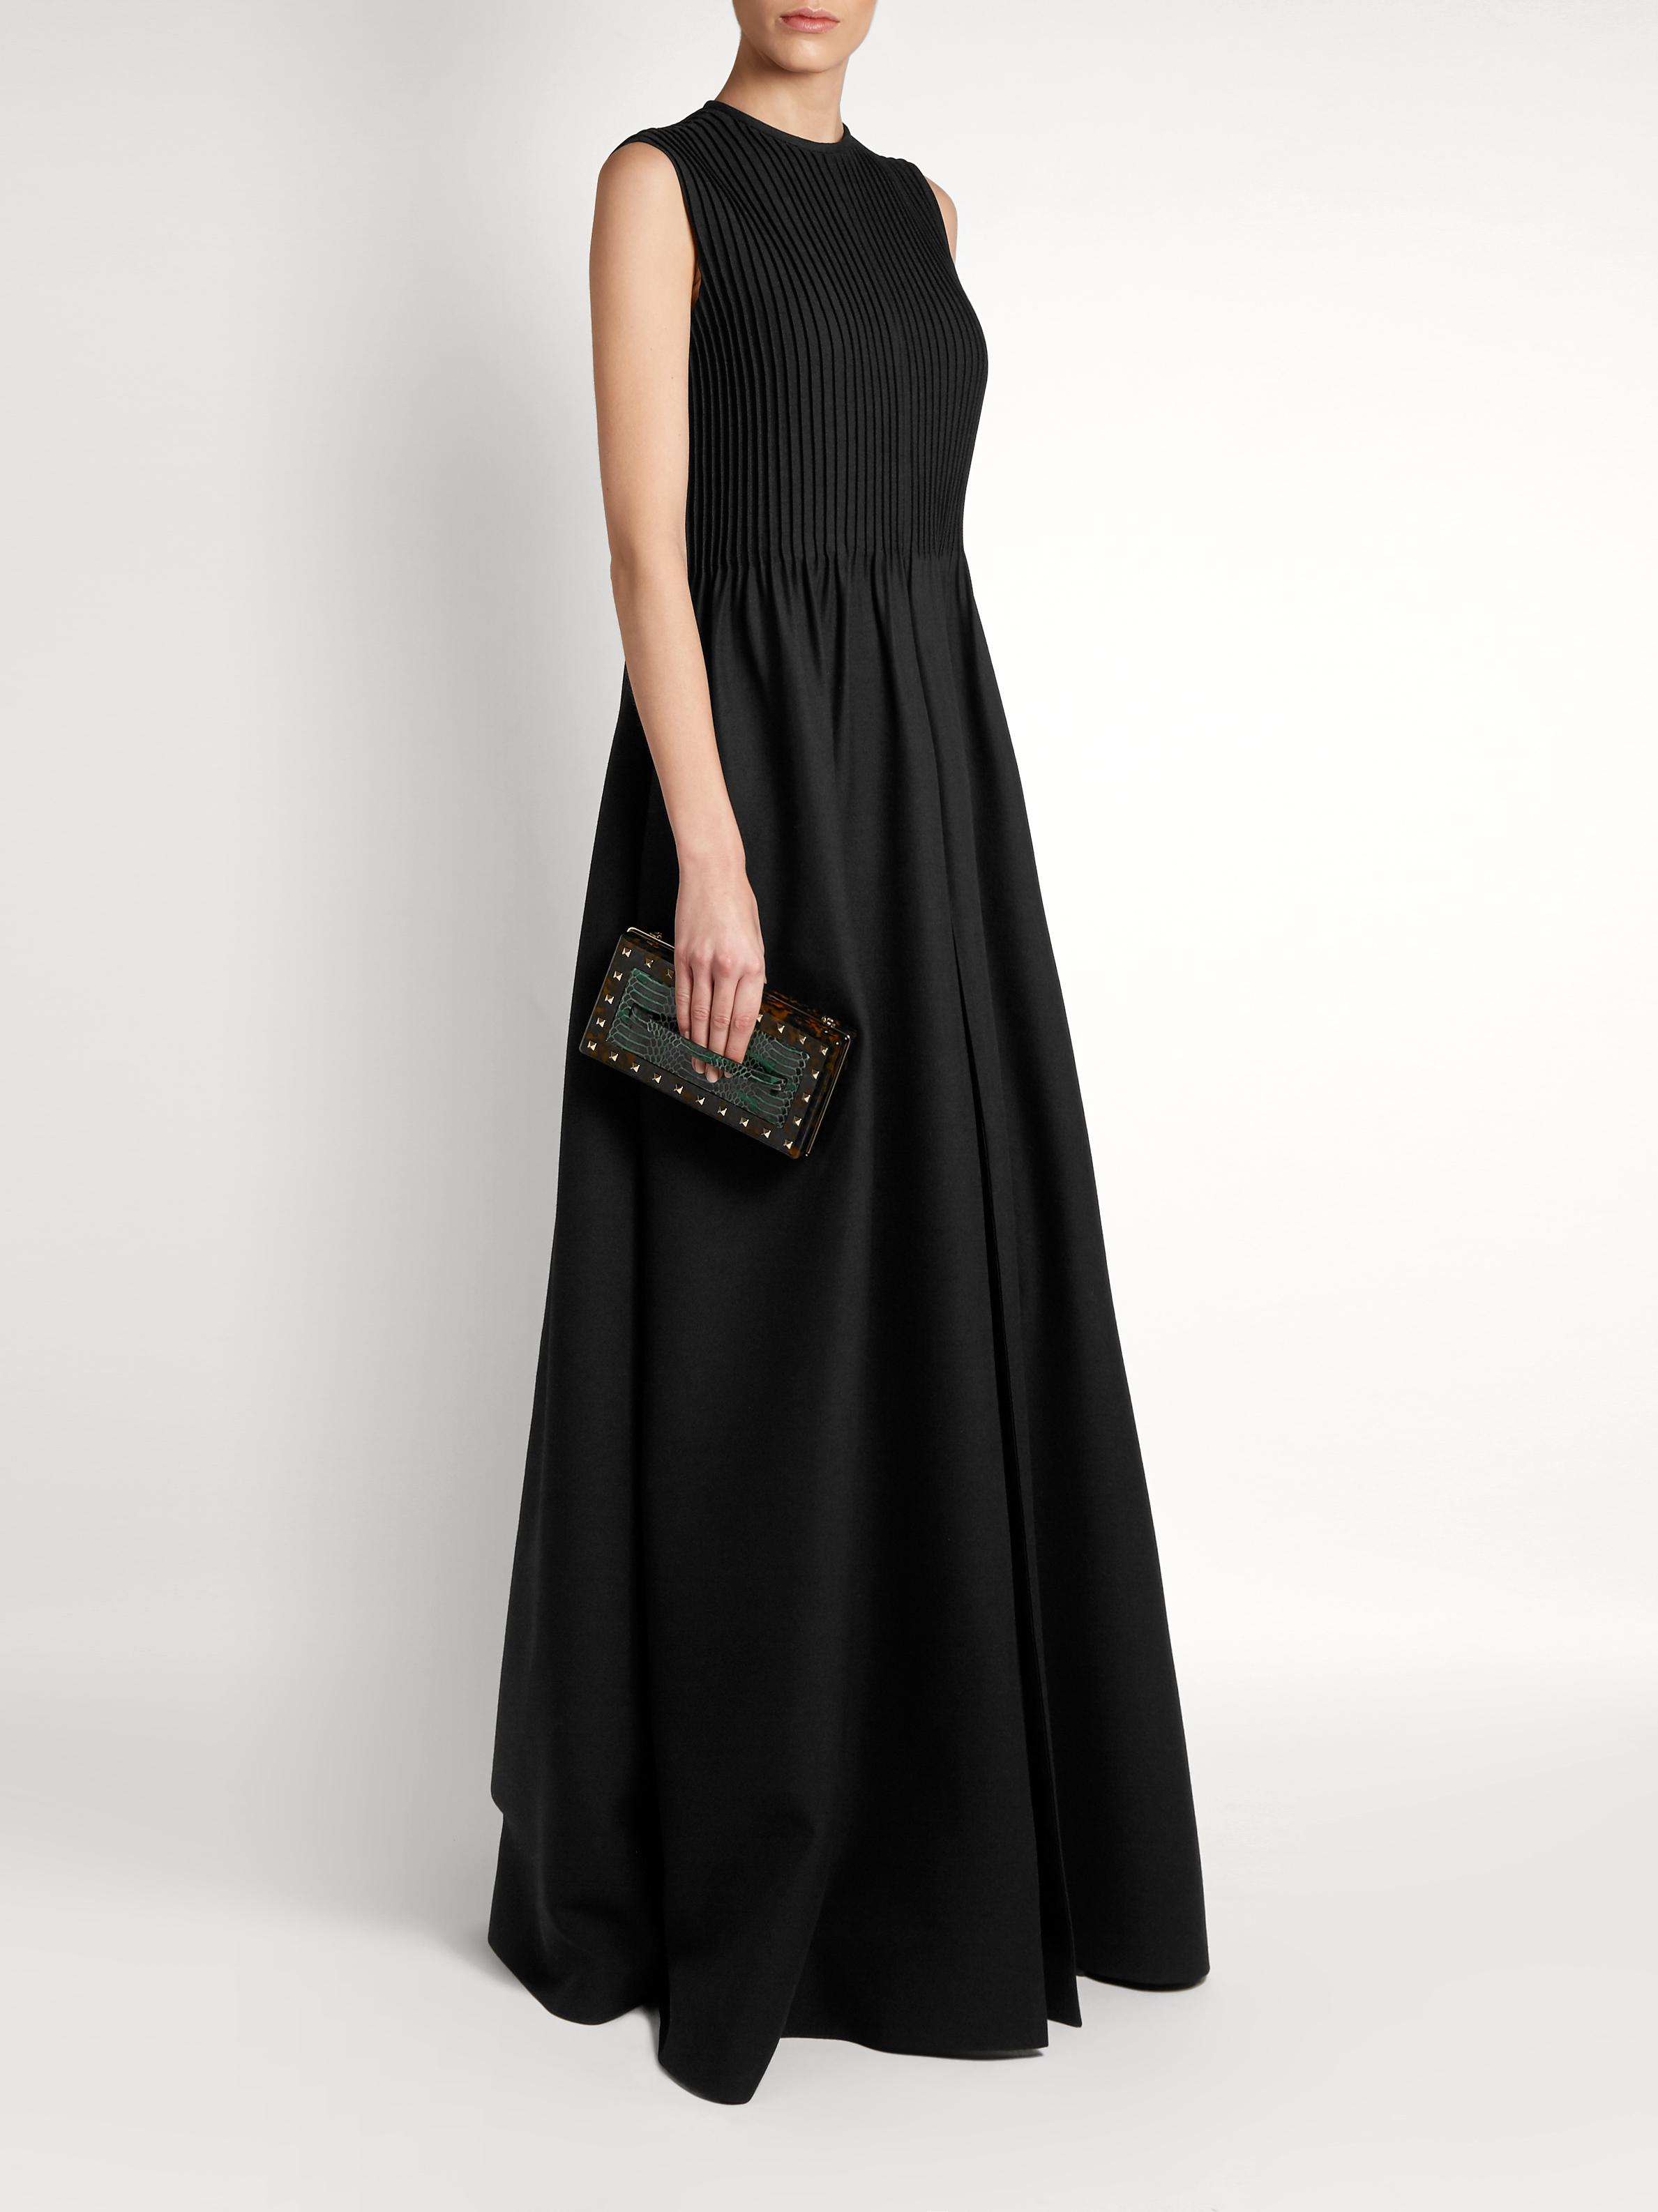 Valentino Pintuck-pleated Wool-blend Gown in Black | Lyst